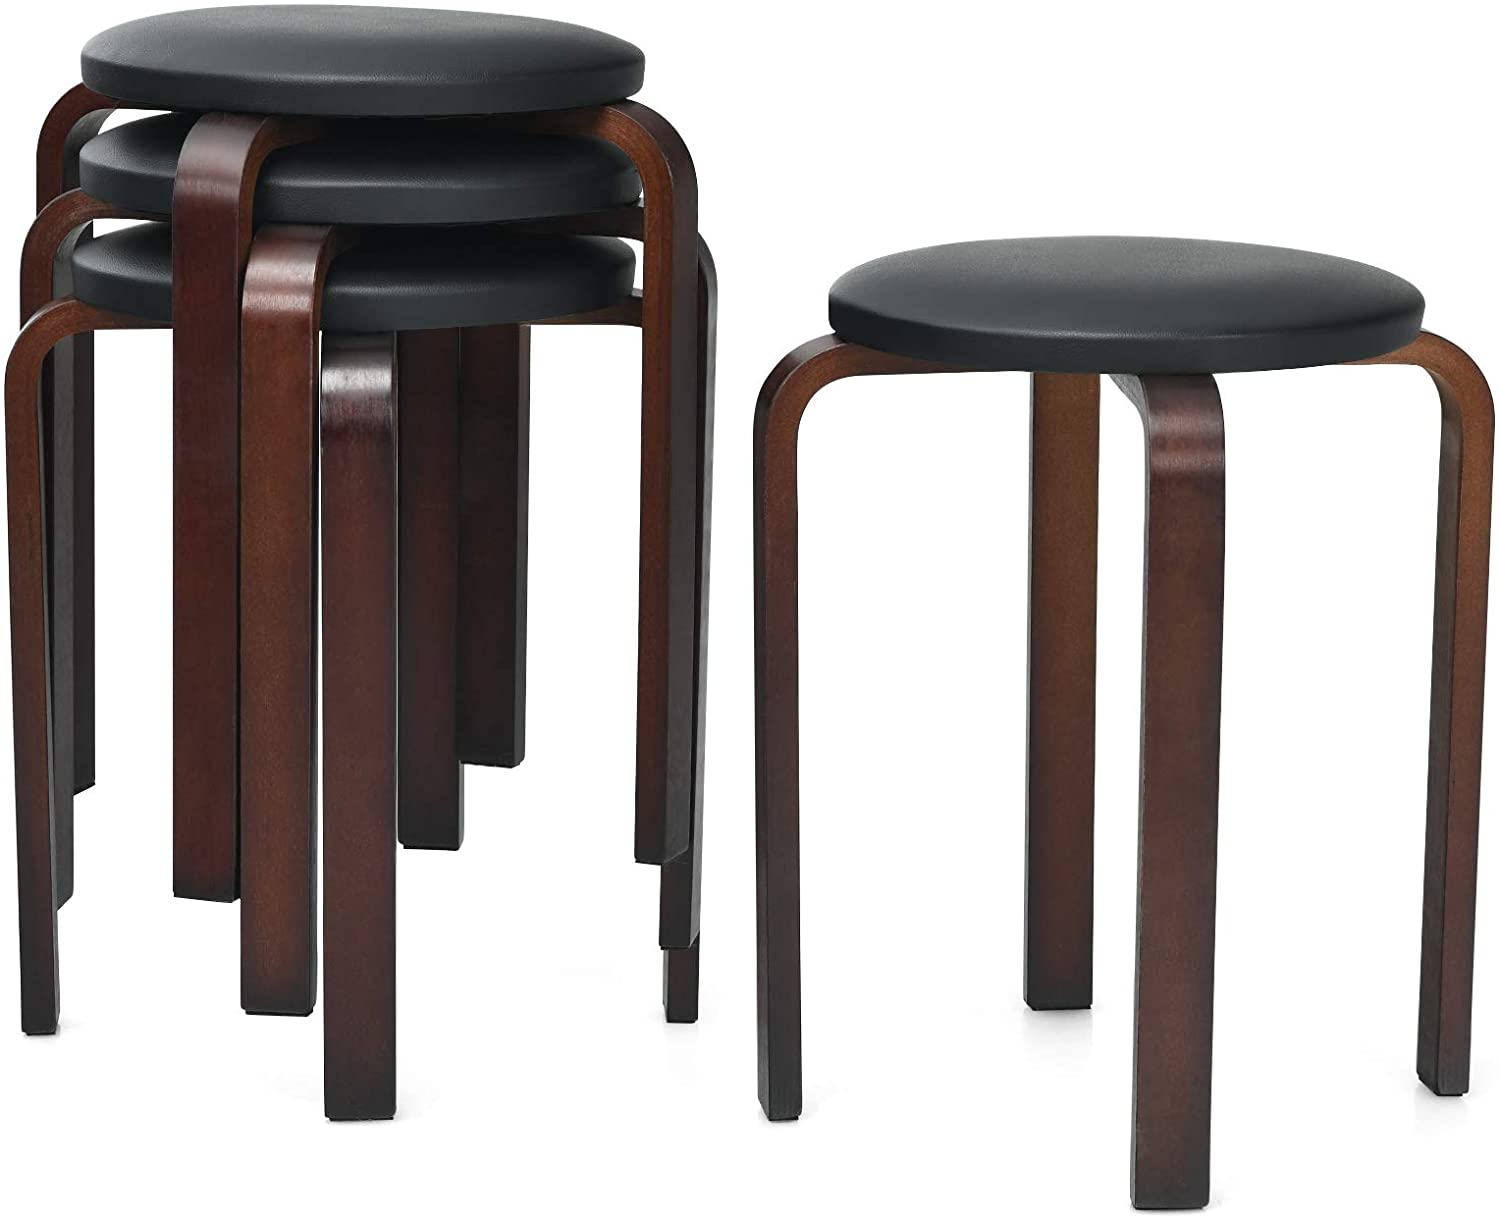 COSTWAY 18.5-inch Bentwood Stools, Set of 4 Backless Round Stools with Cushioned Seat, Non-Slip Foot Mats, Stackable Counter Stools for Dining, Kitchen, Living and Class Room (Black)